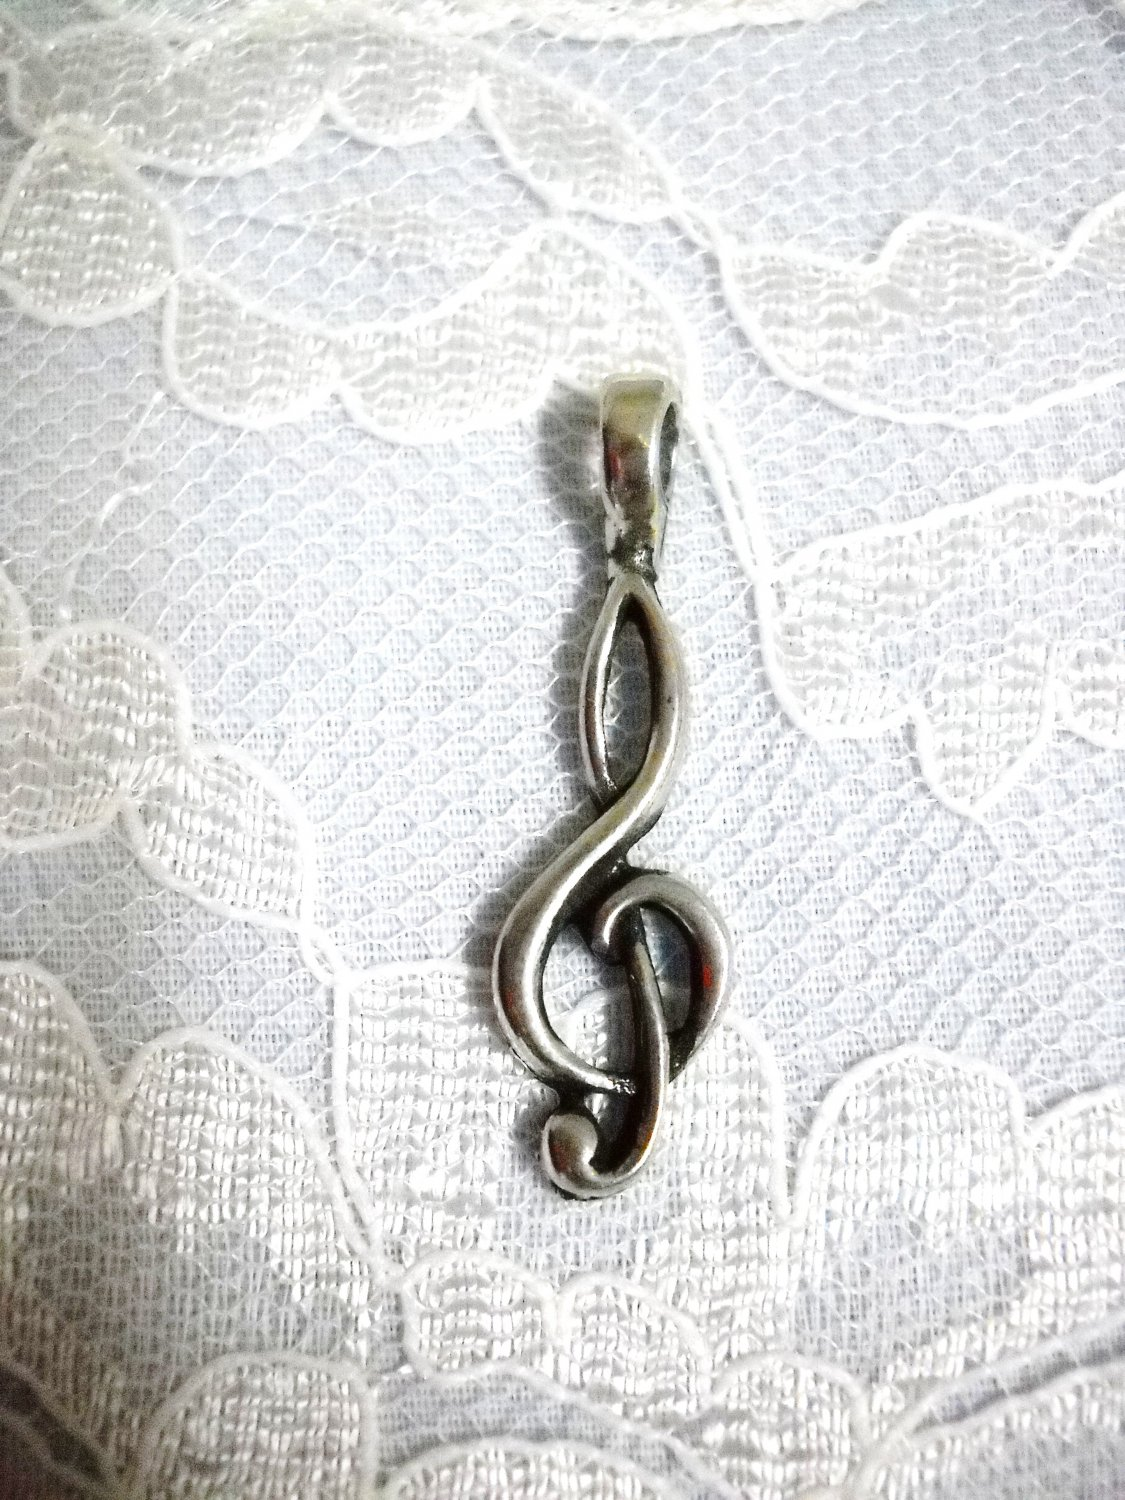 G CLEF TREBLE CLEF MUSIC SYMBOL PEWTER PENDANT NECKLACE